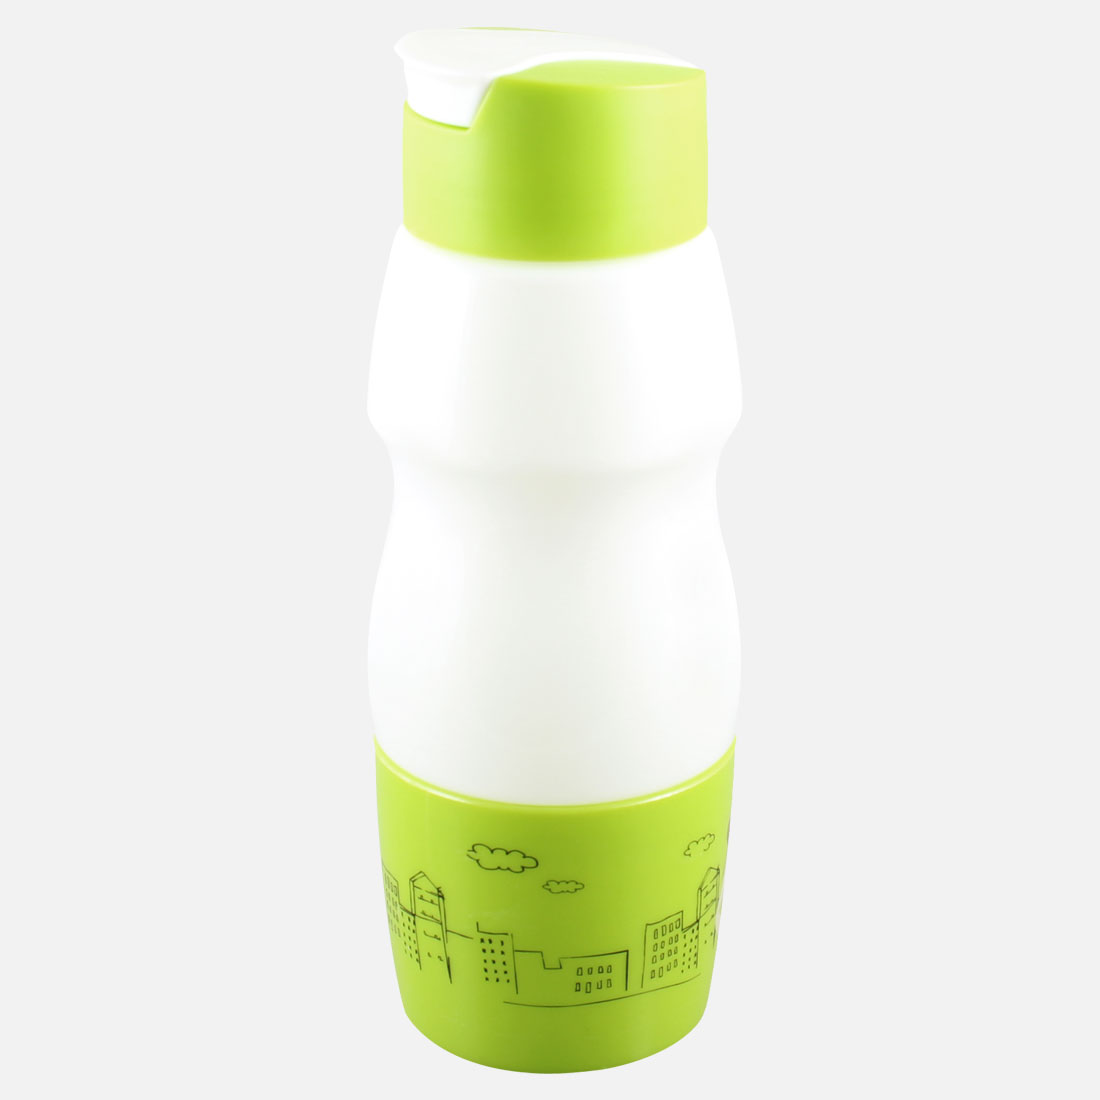 700ML Cartoon Pattern Green White Plastic Drinking Water Bottle Cup Container